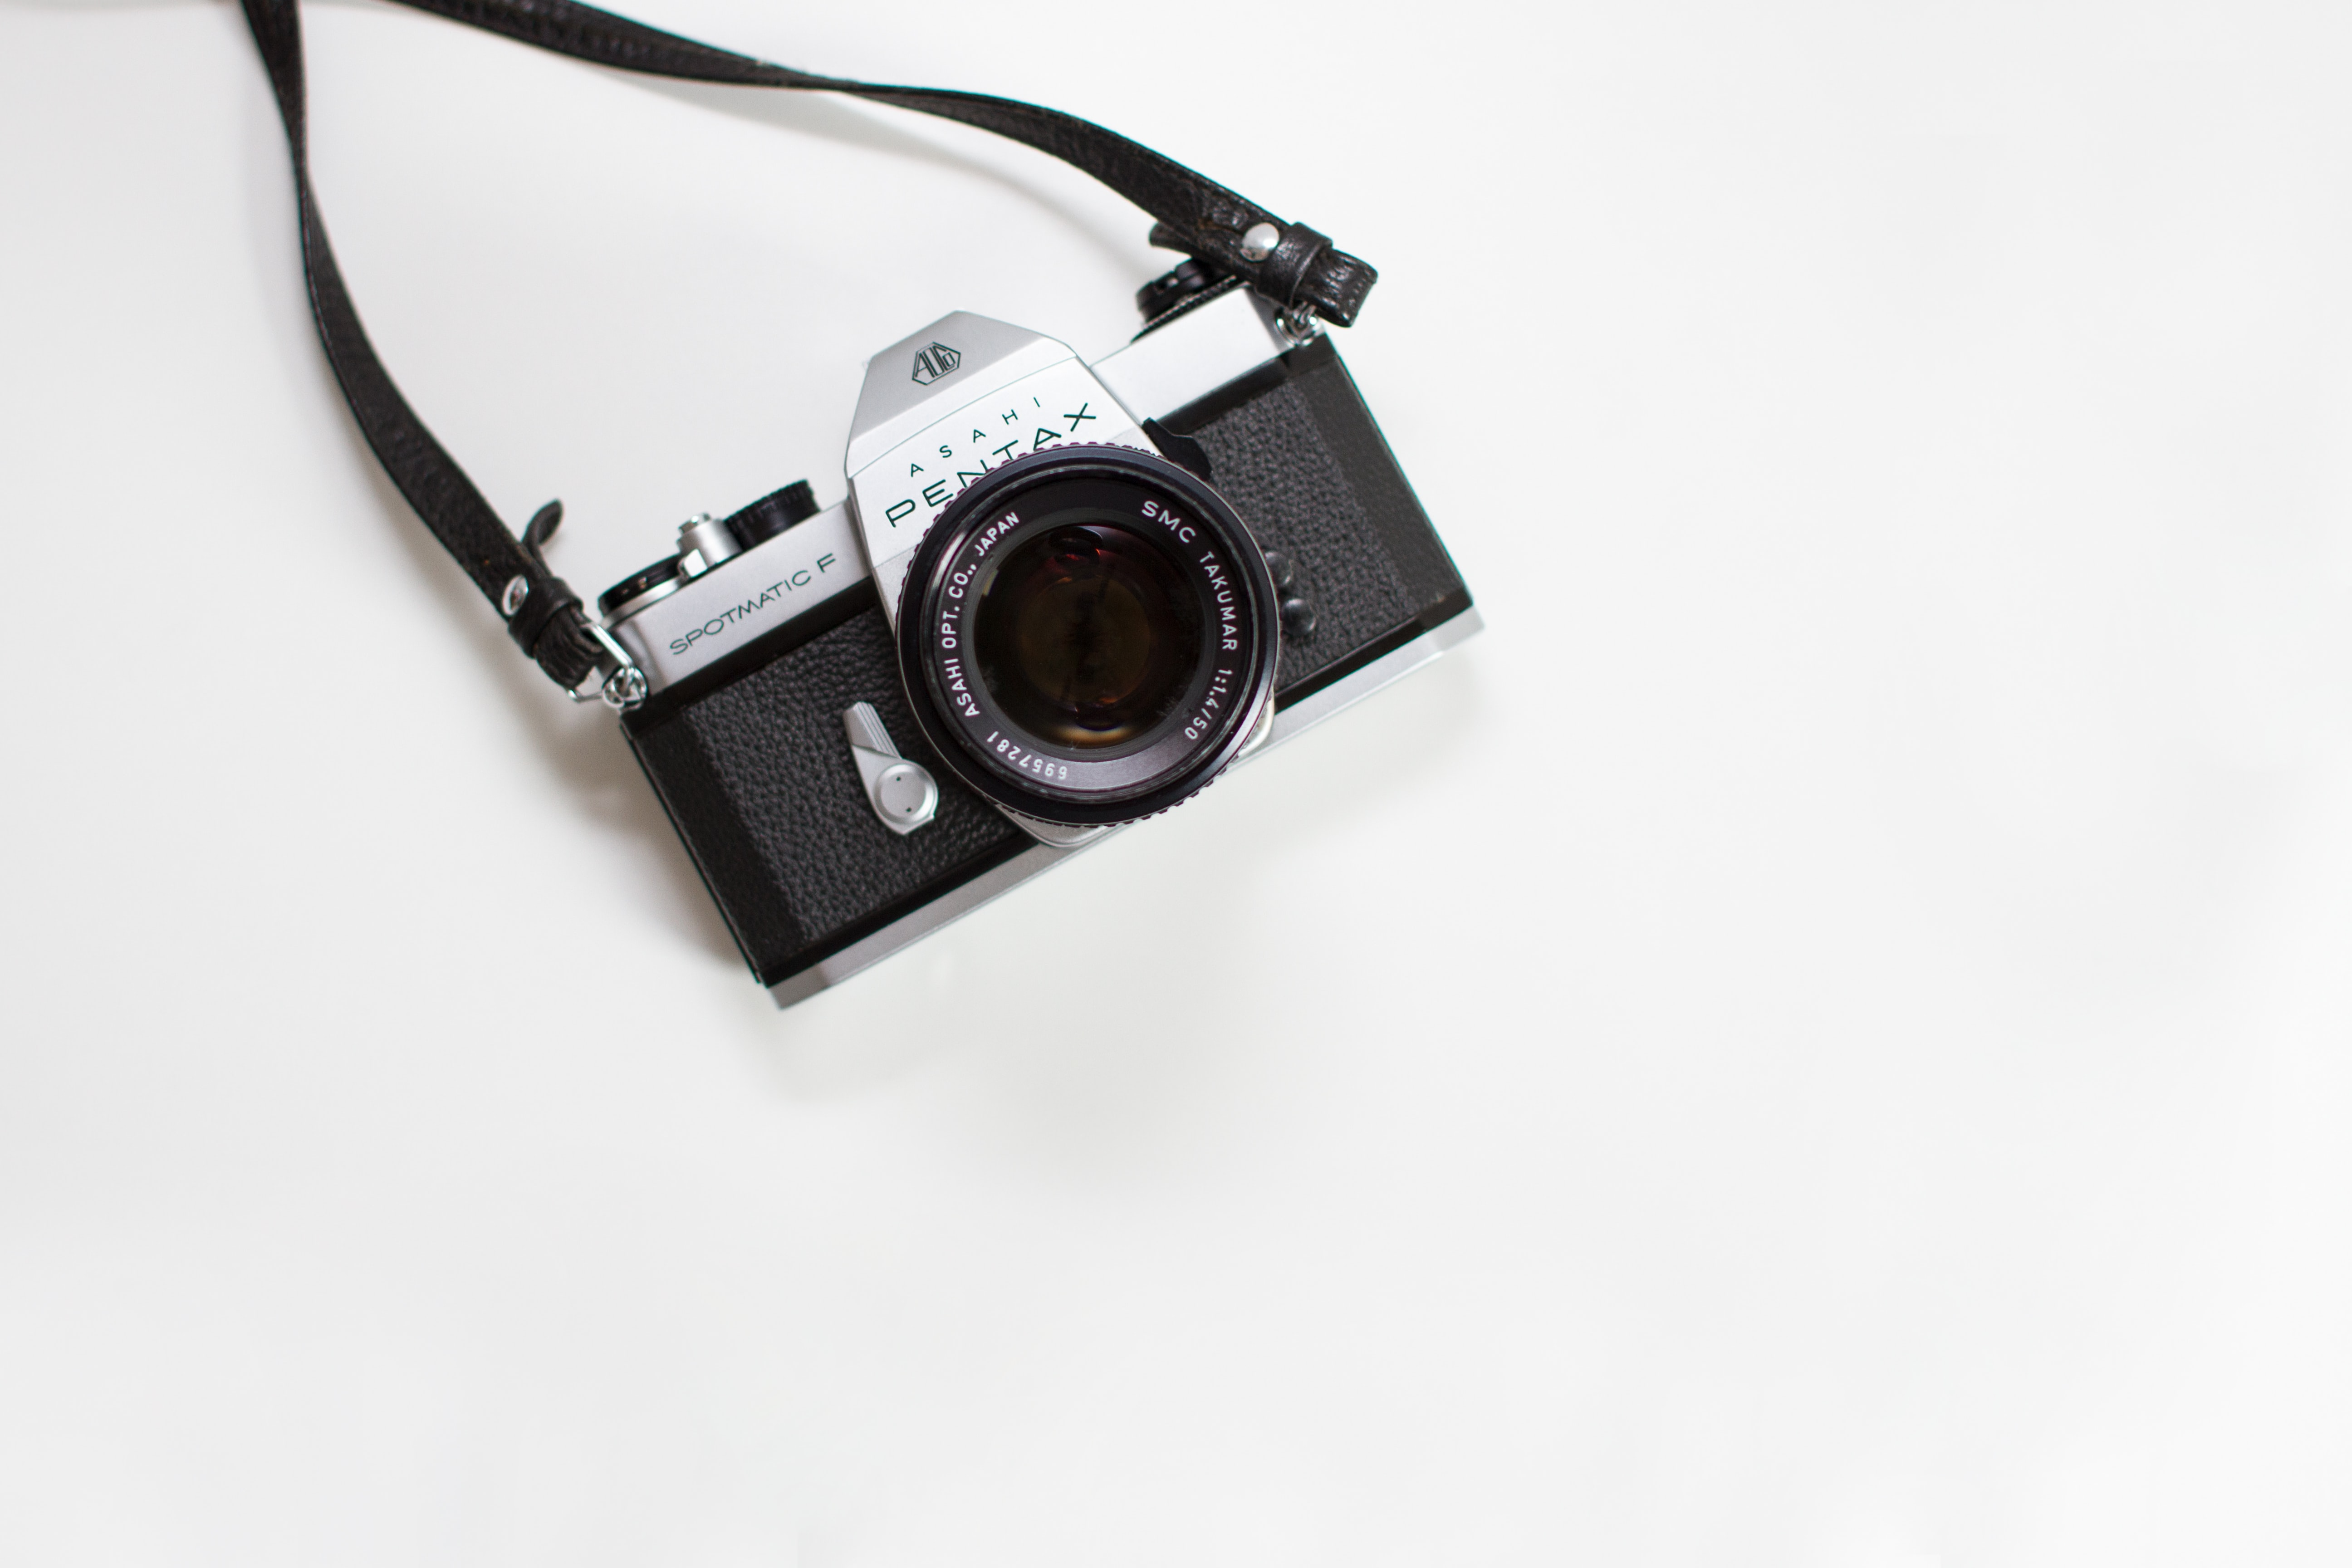 black and gray Pentax digital camera on white surface